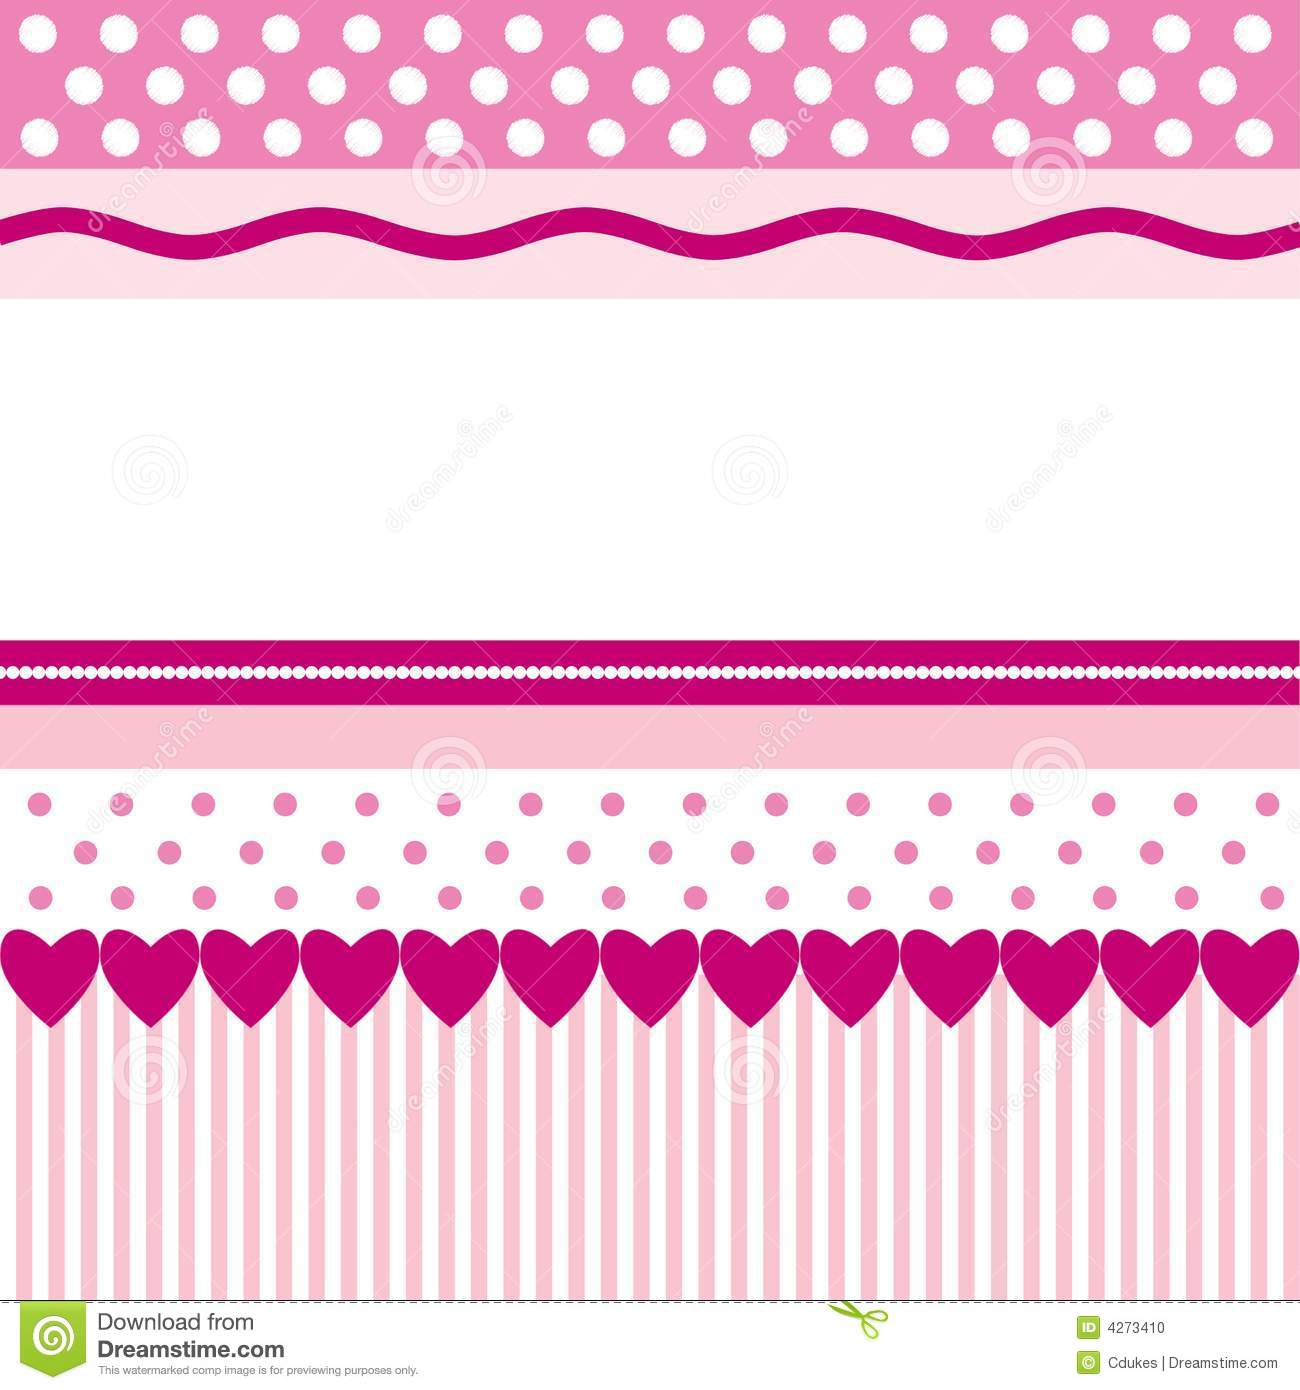 Bright pink patterns as background image with blank space for text.